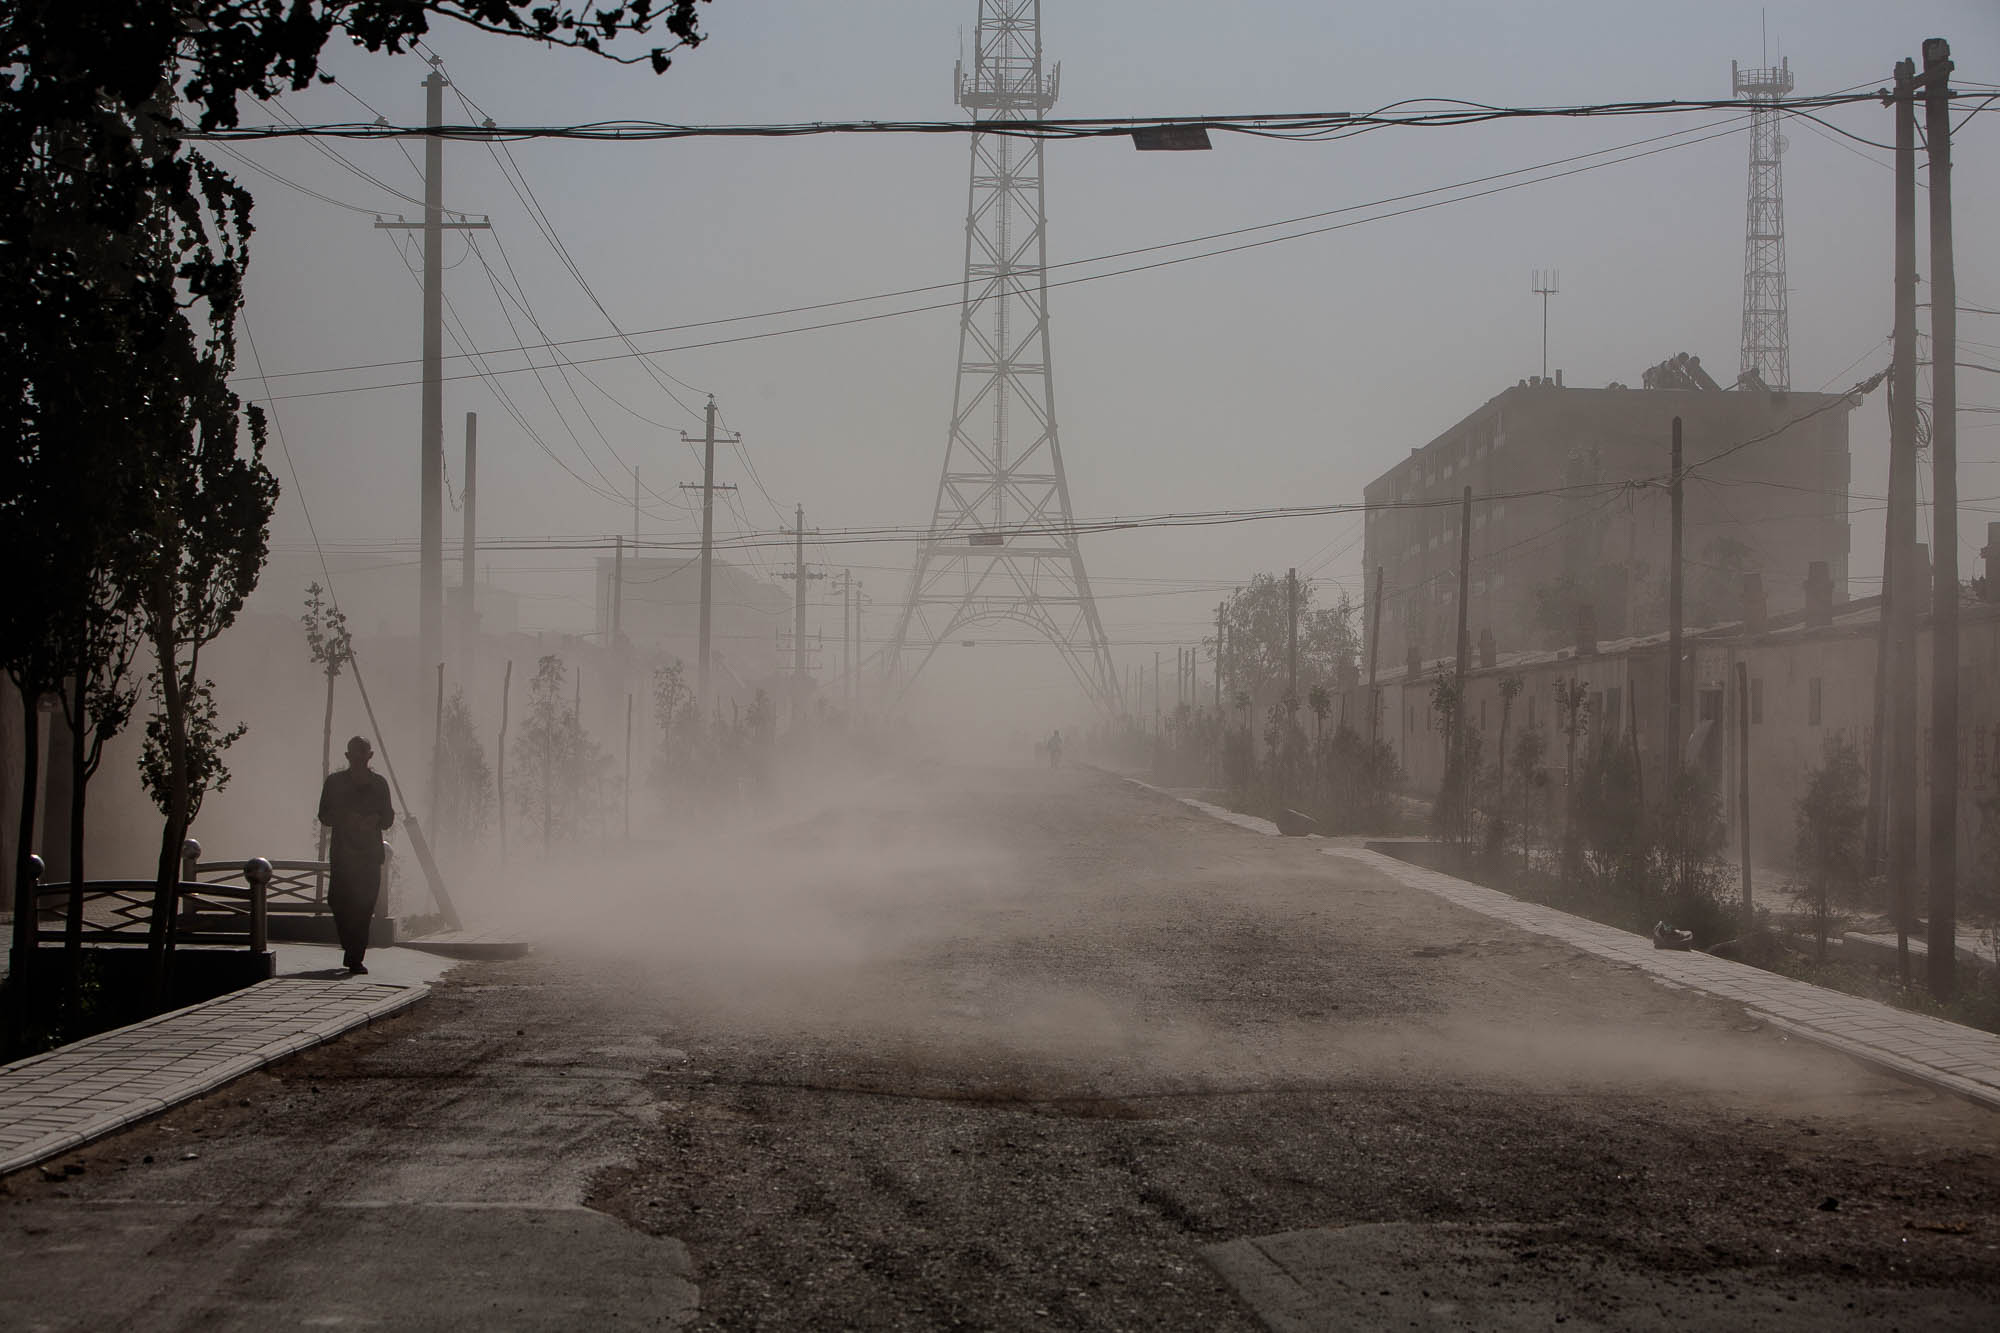 dust storm coming to town